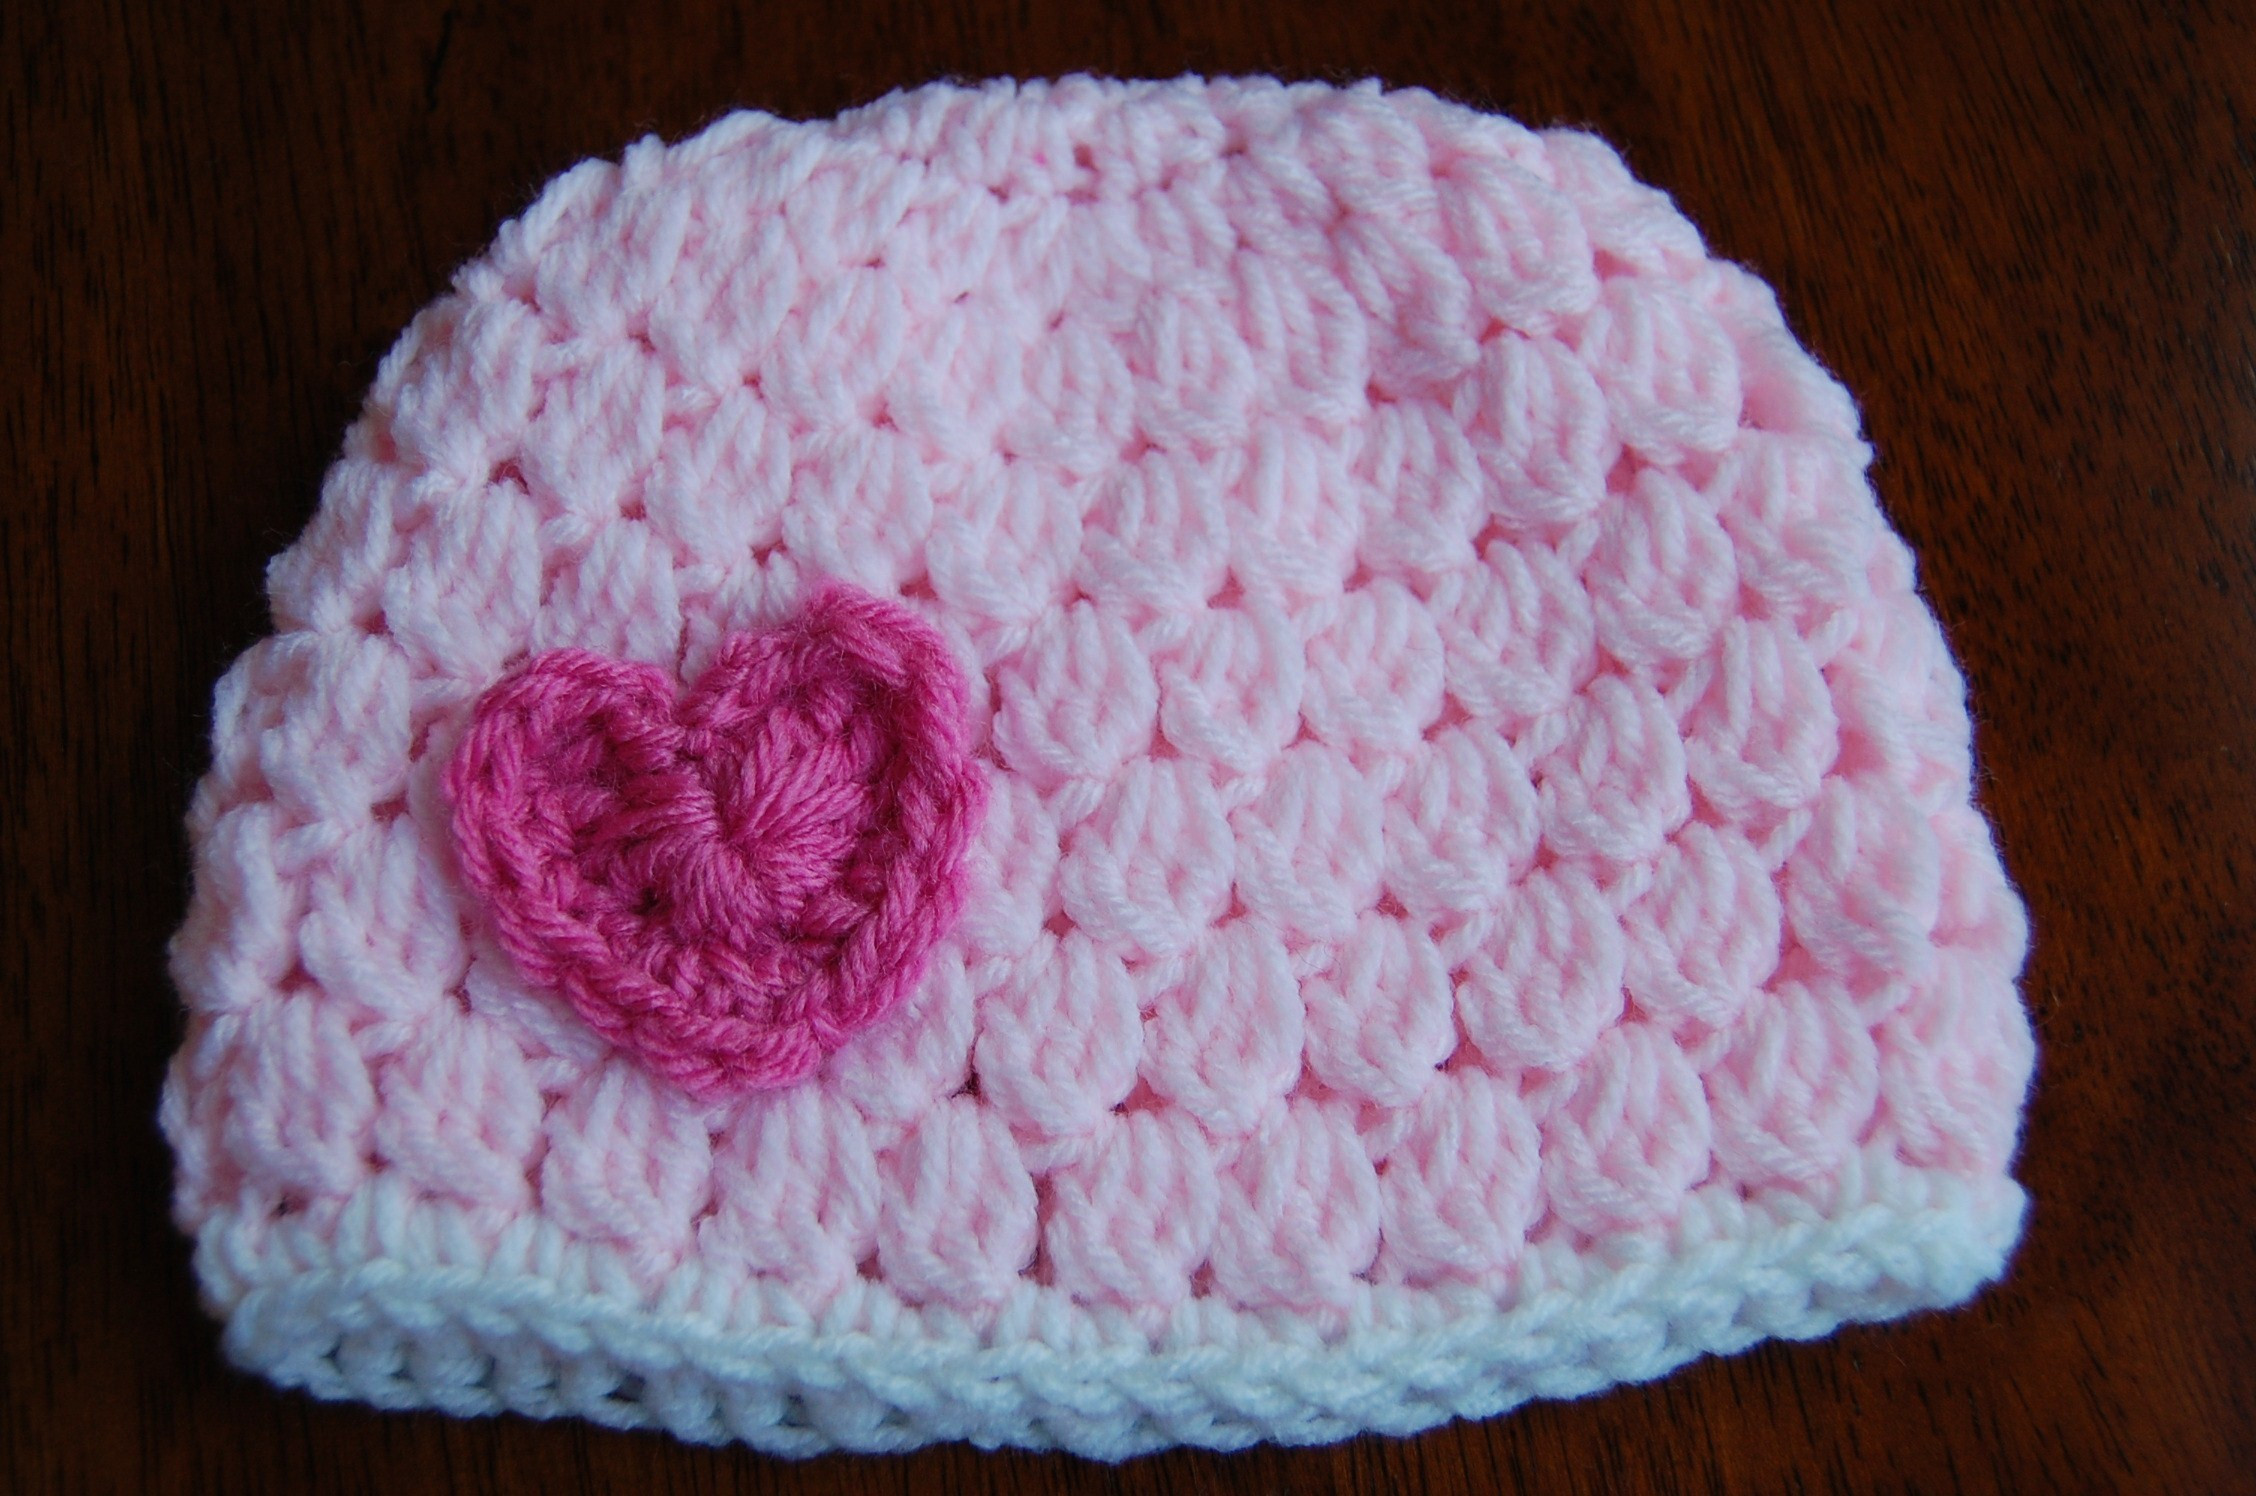 Crochet toddler Hat Beautiful Free Girl S Crochet Hat Pattern with Heart Of Marvelous 41 Photos Crochet toddler Hat